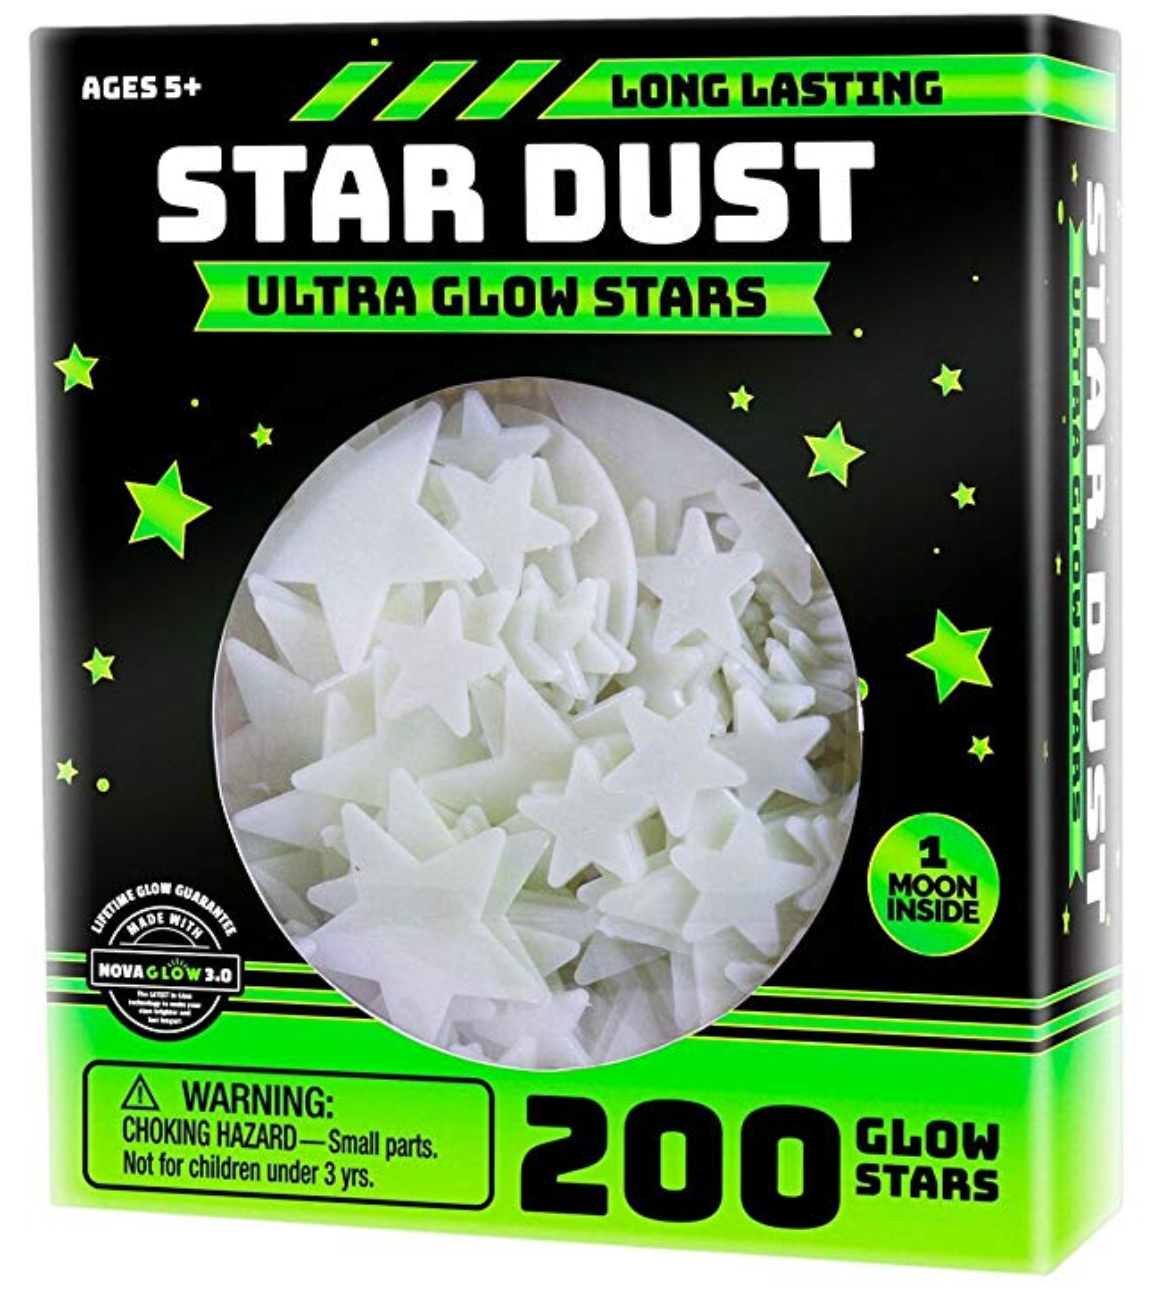 Glow in the dark stars.